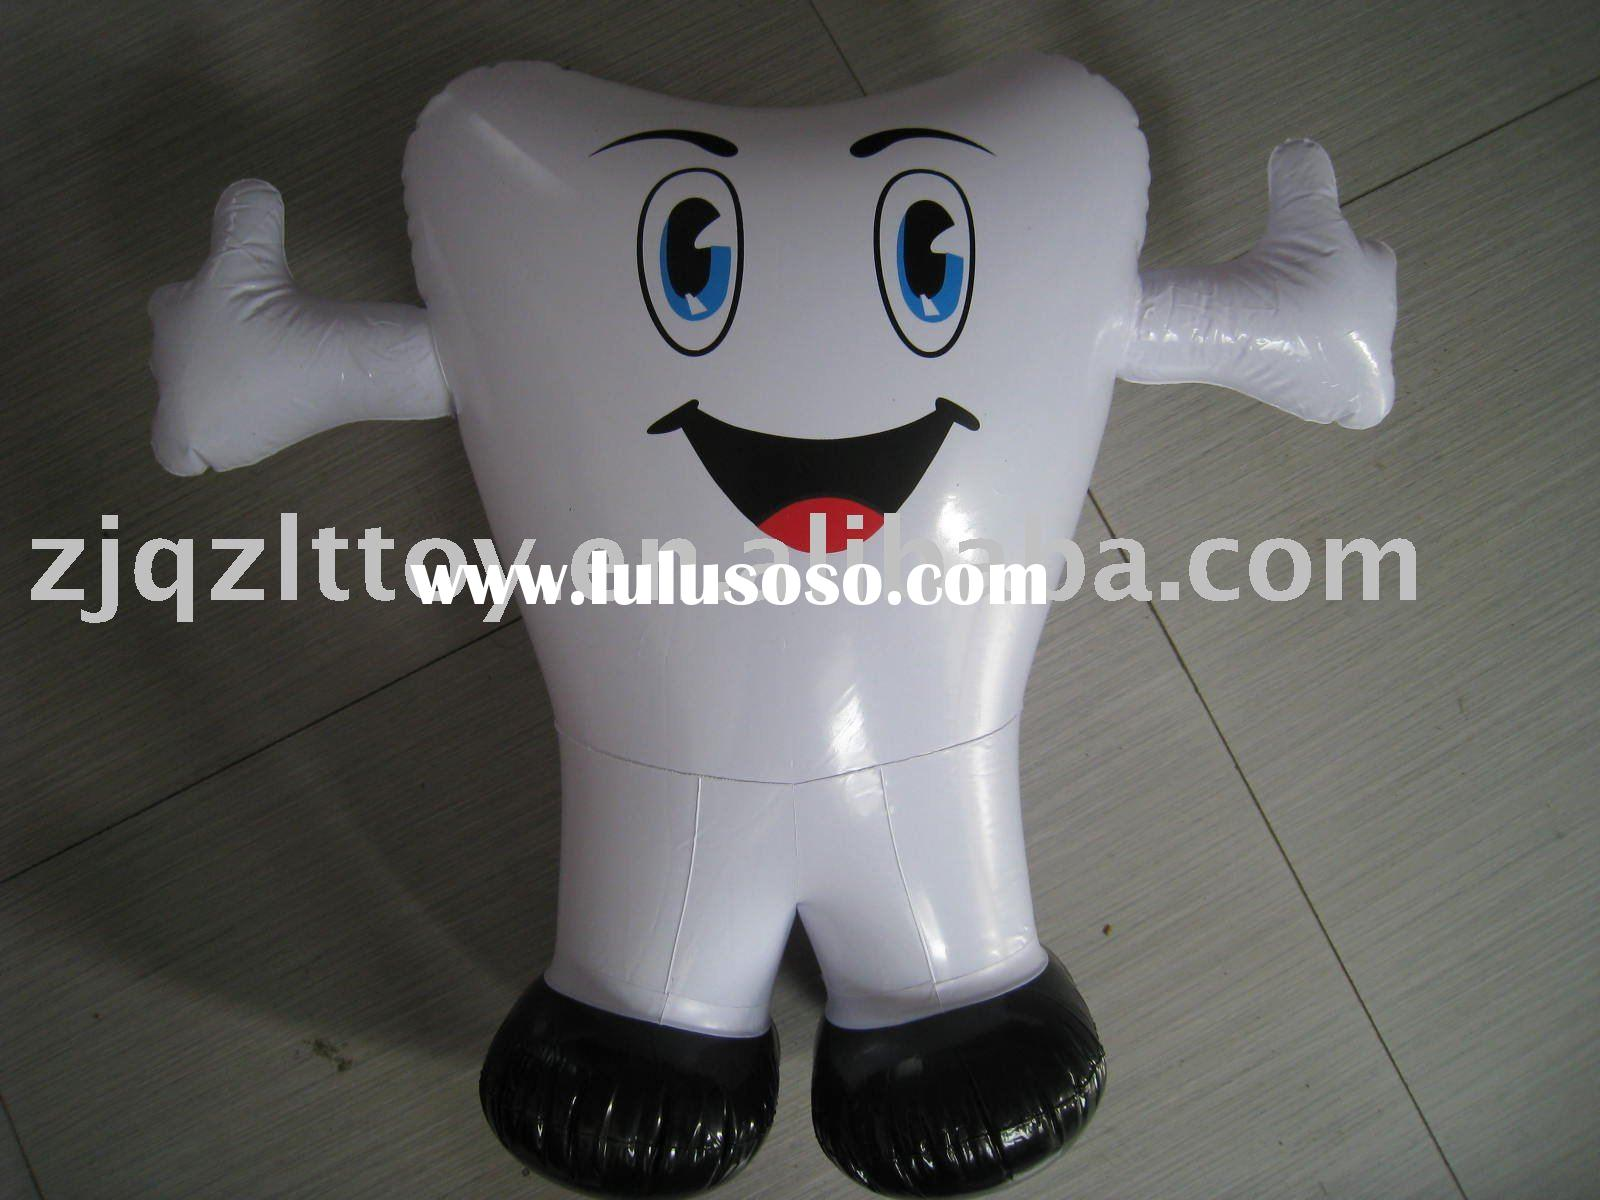 Inflatable toy manufacturers usa